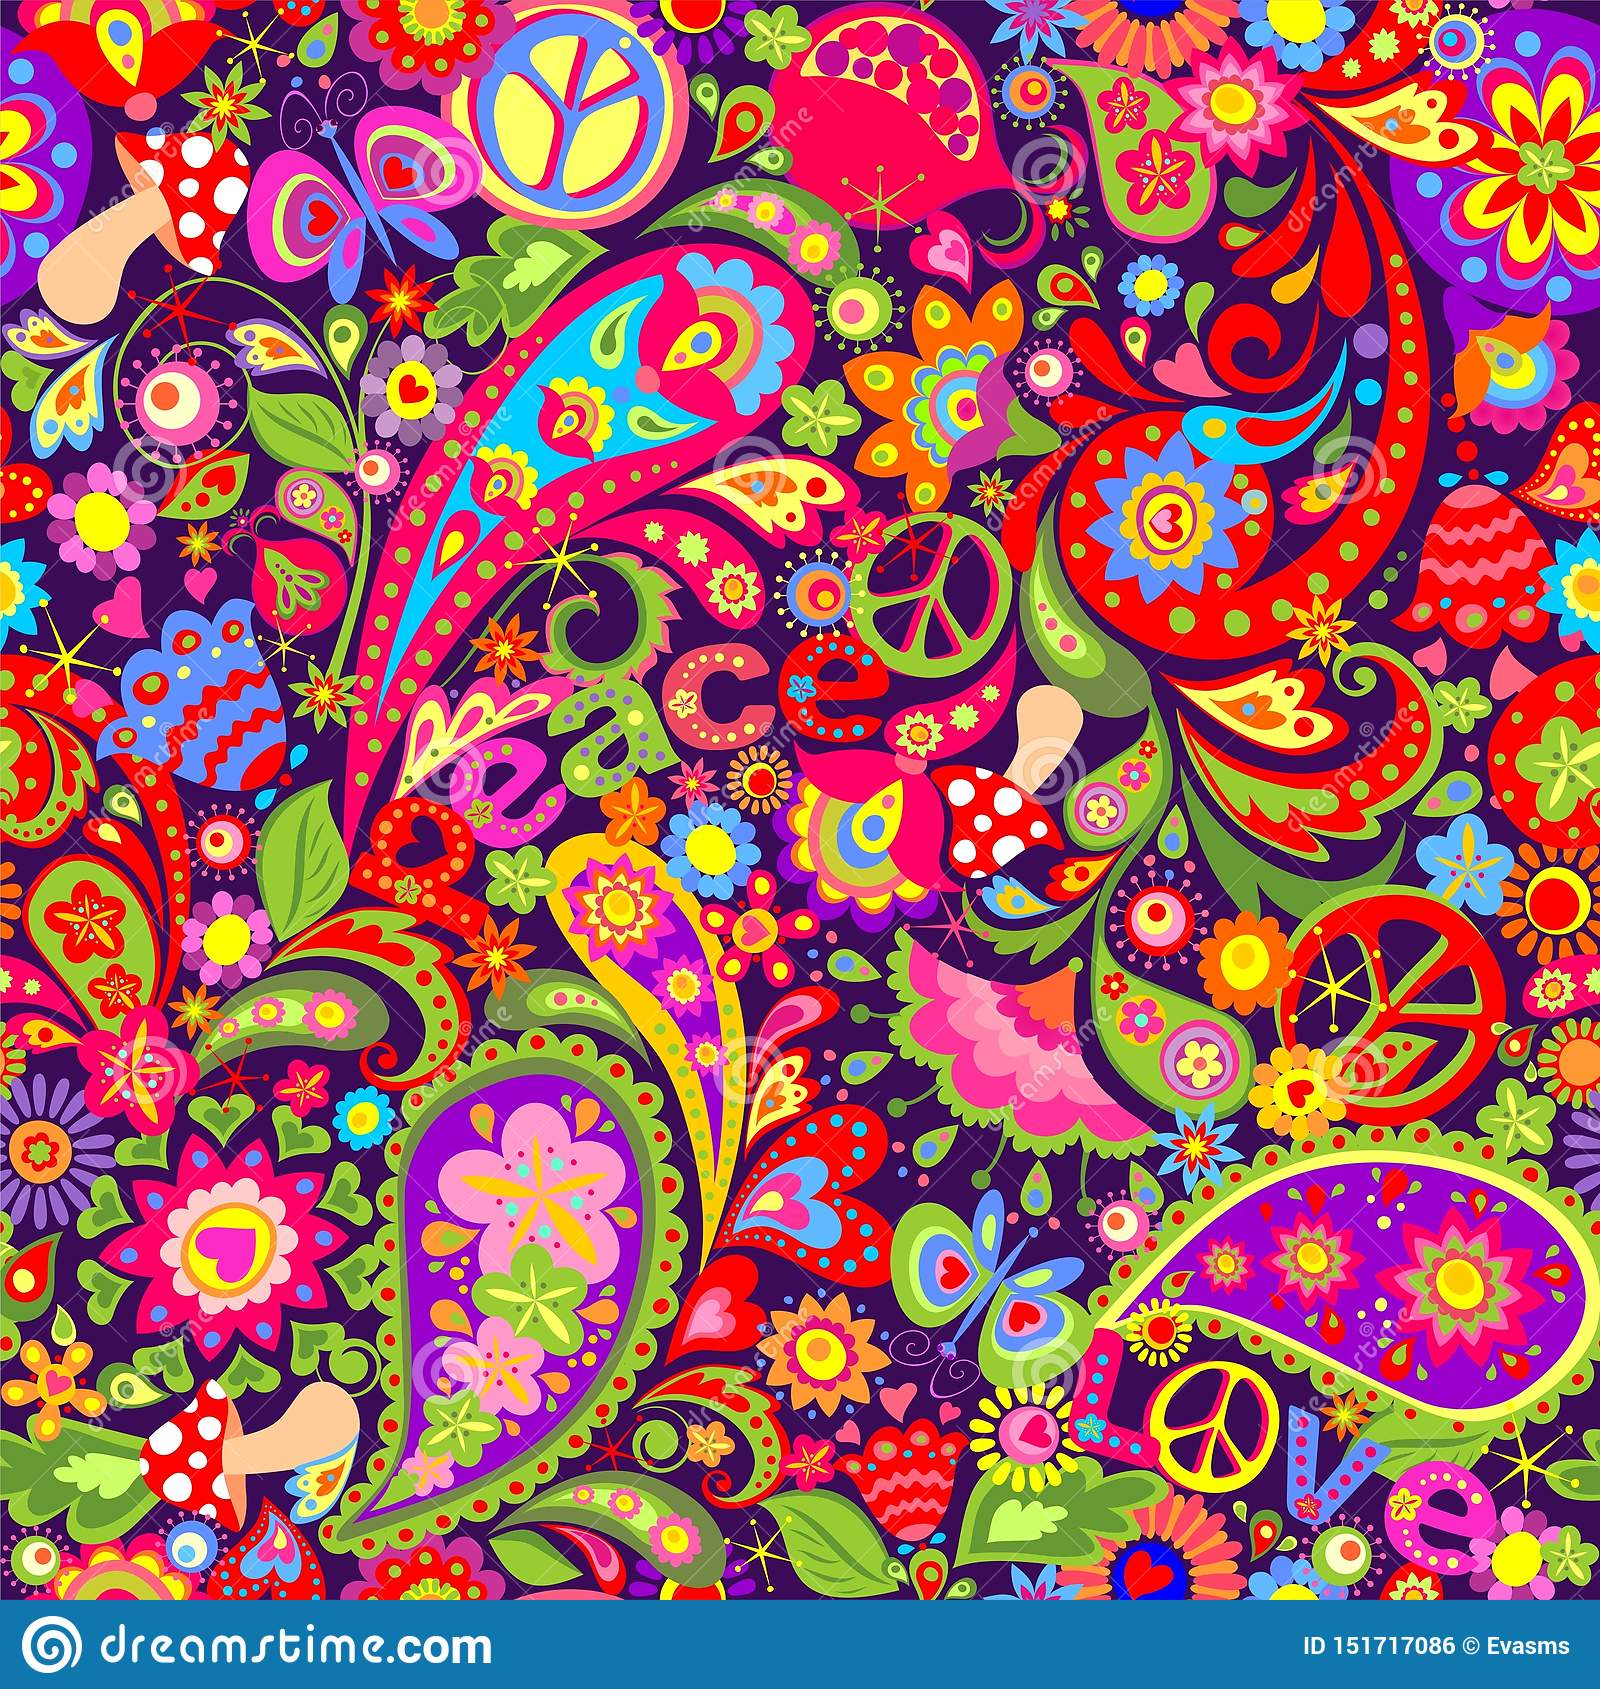 Wallpaper Of Peace: Flowers Peace Sign Wallpaper Stock Illustrations